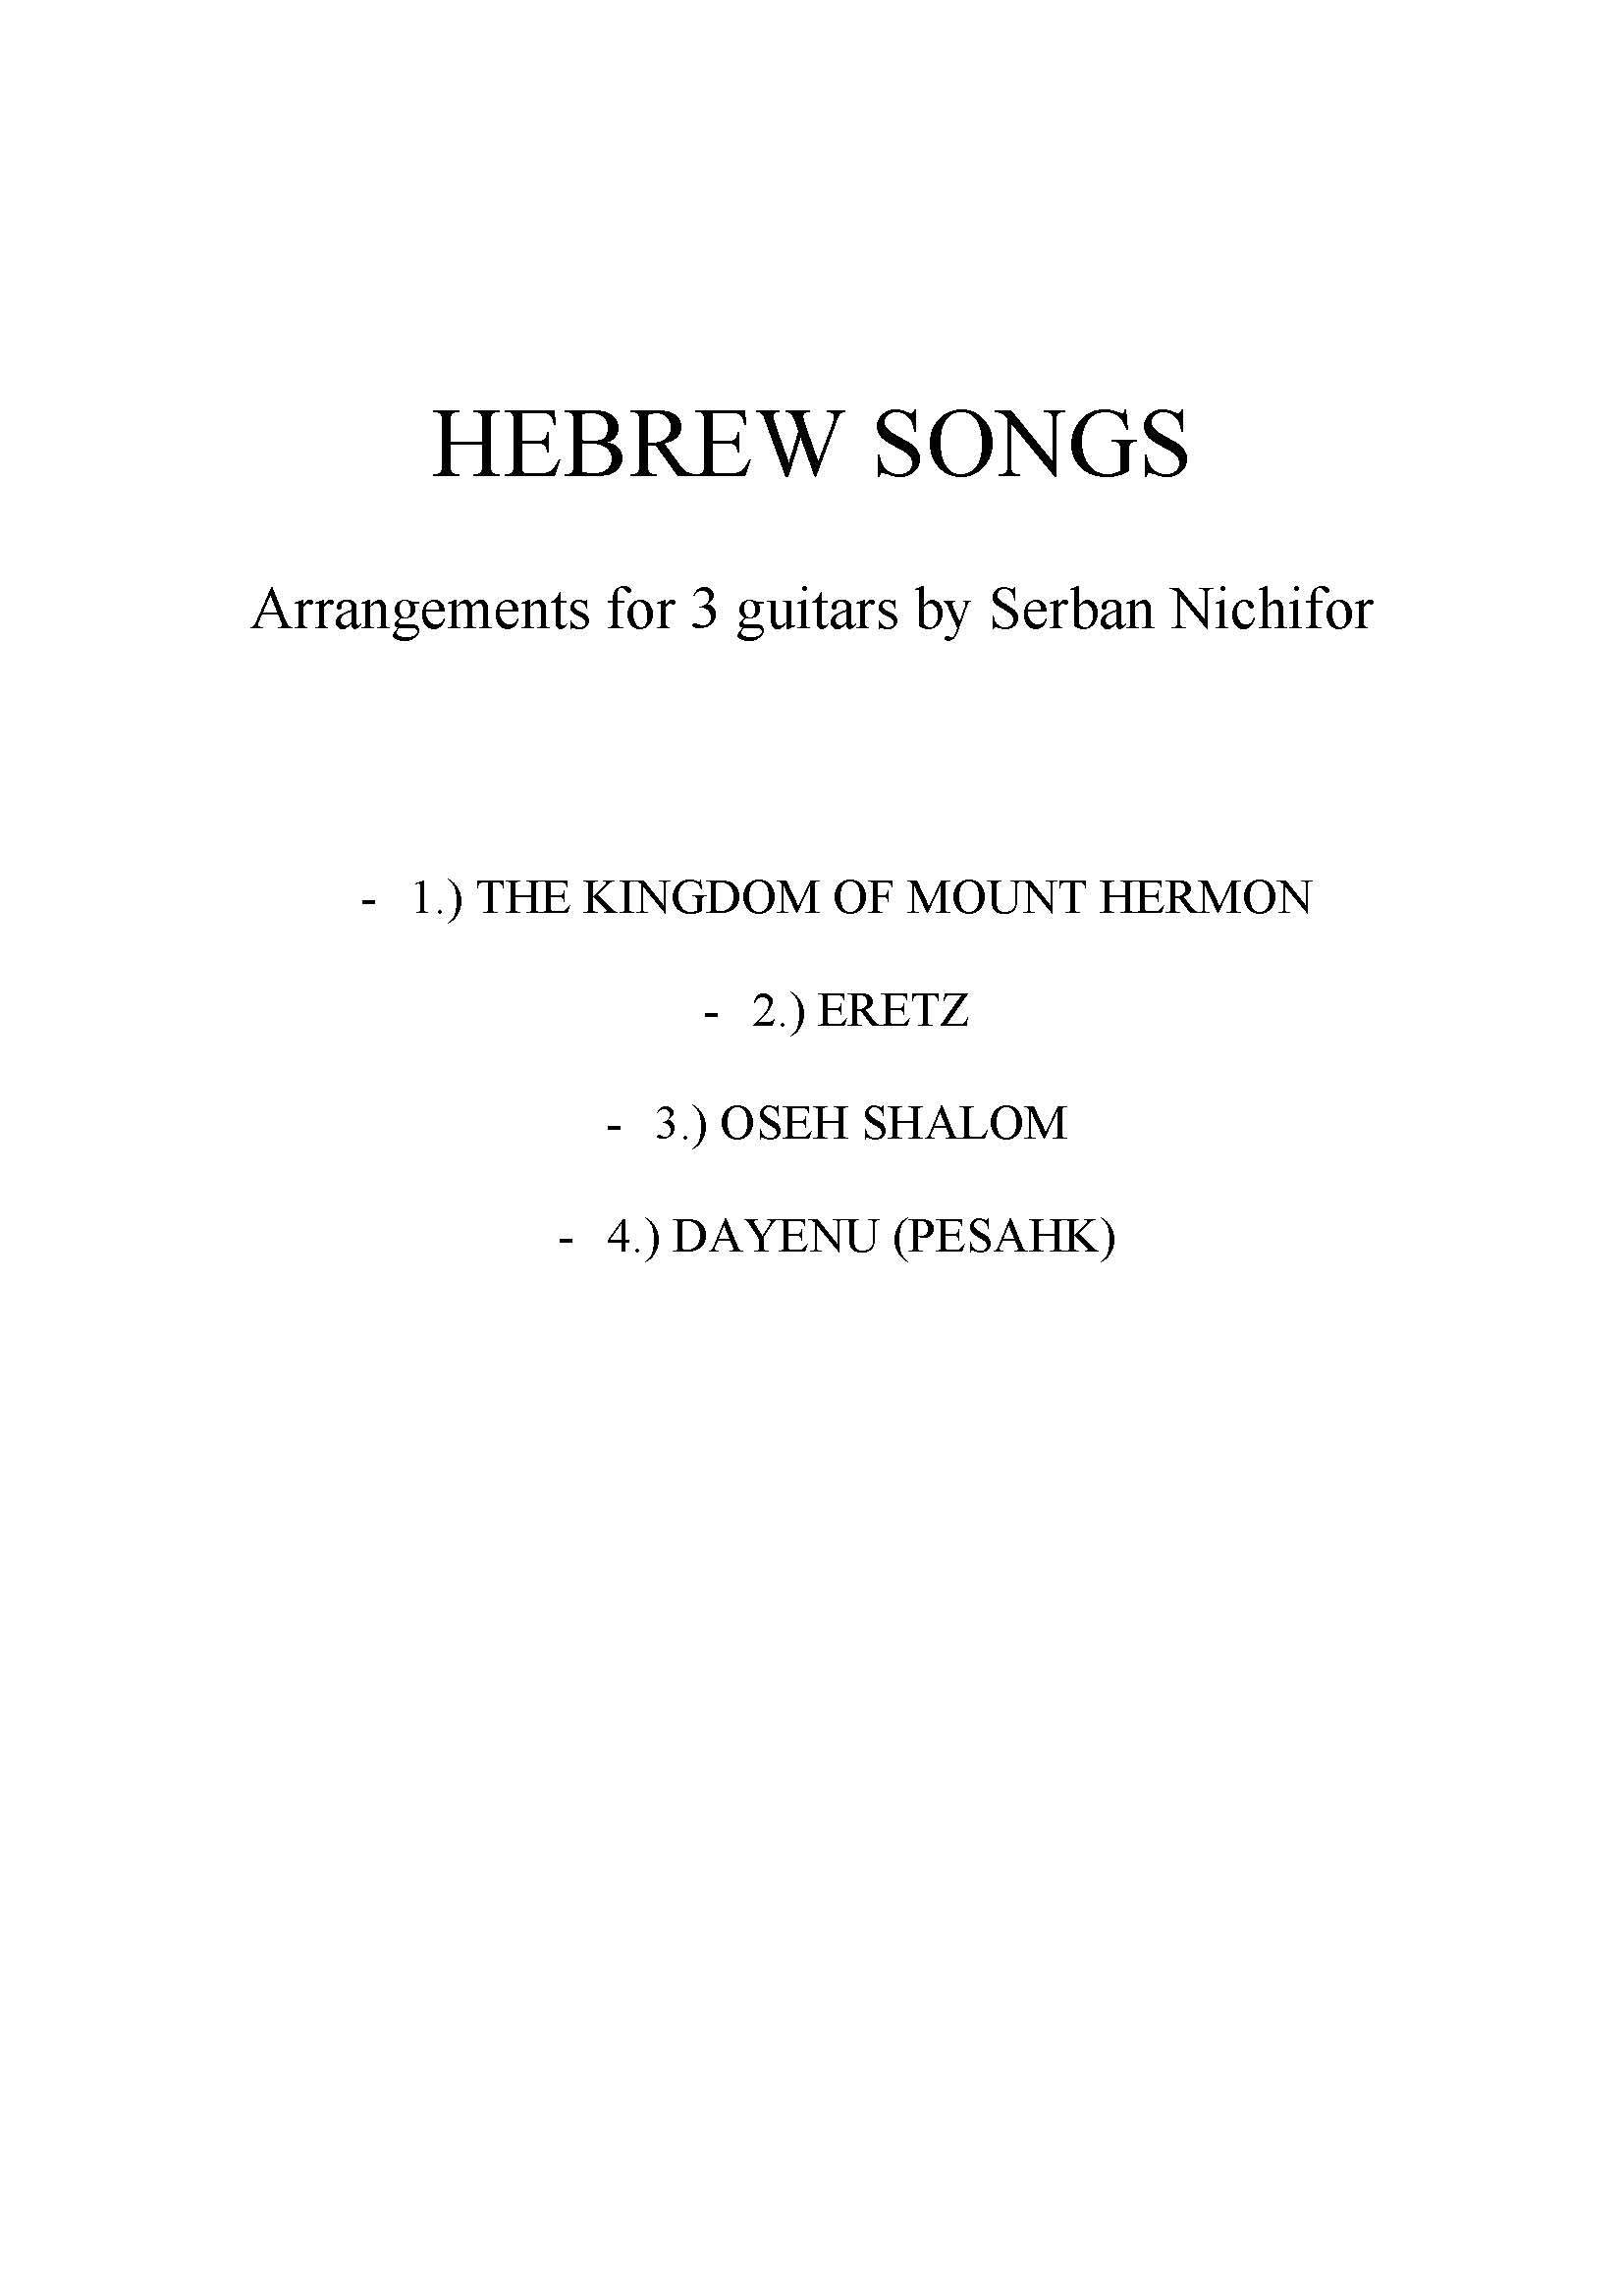 Traditional: HEBREW SONGS for 3 guitars